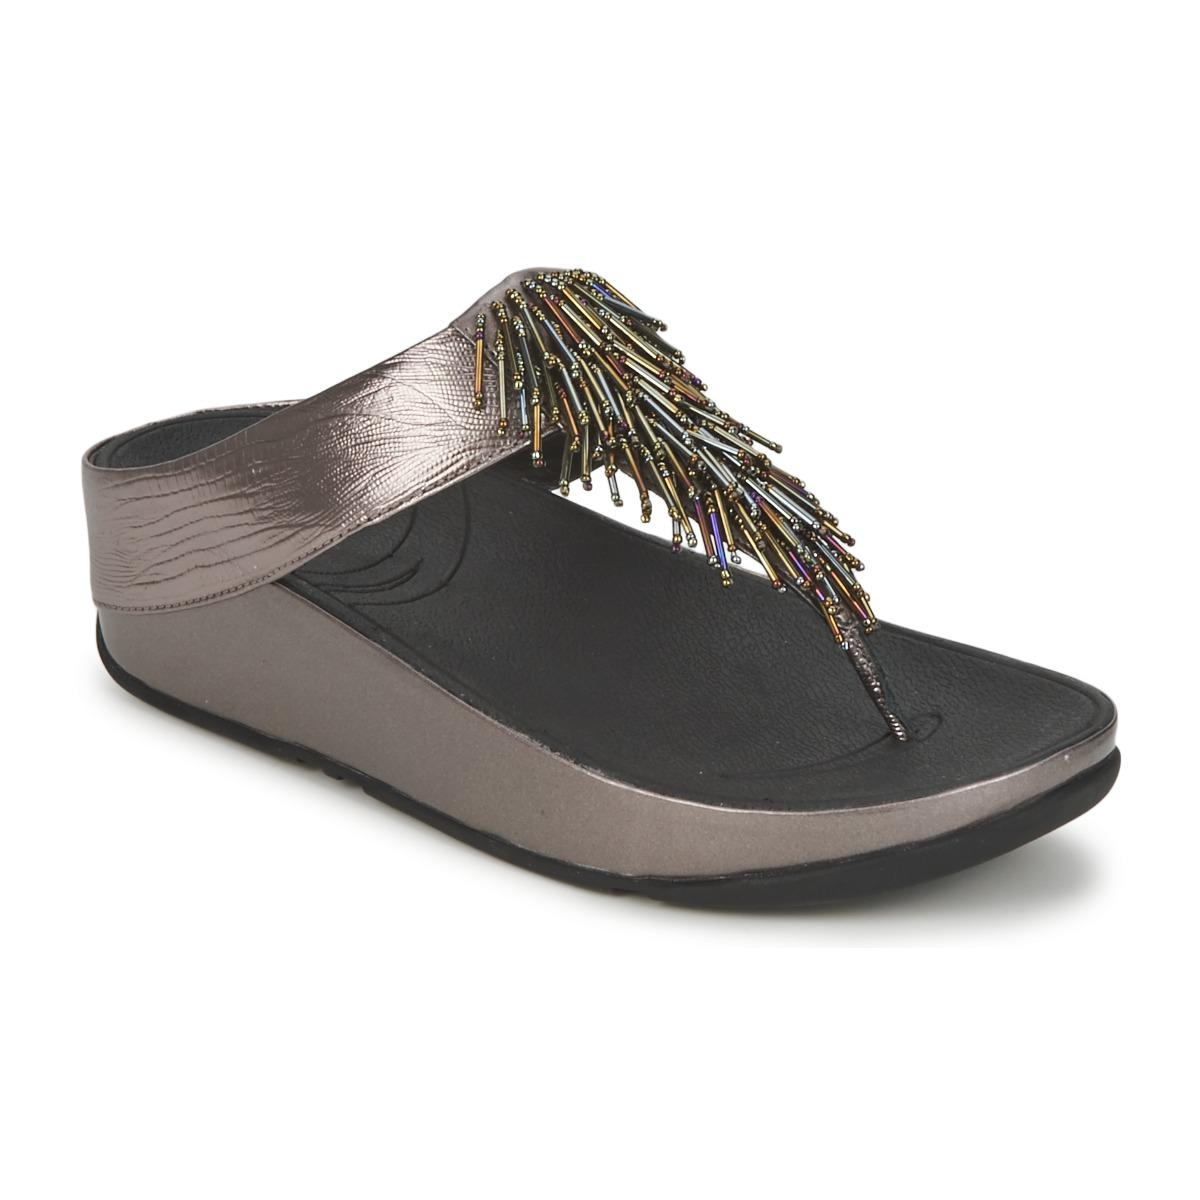 ac8b70ac9792 Fitflop Cha Chatm Women s Flip Flops   Sandals (shoes) In Silver in ...